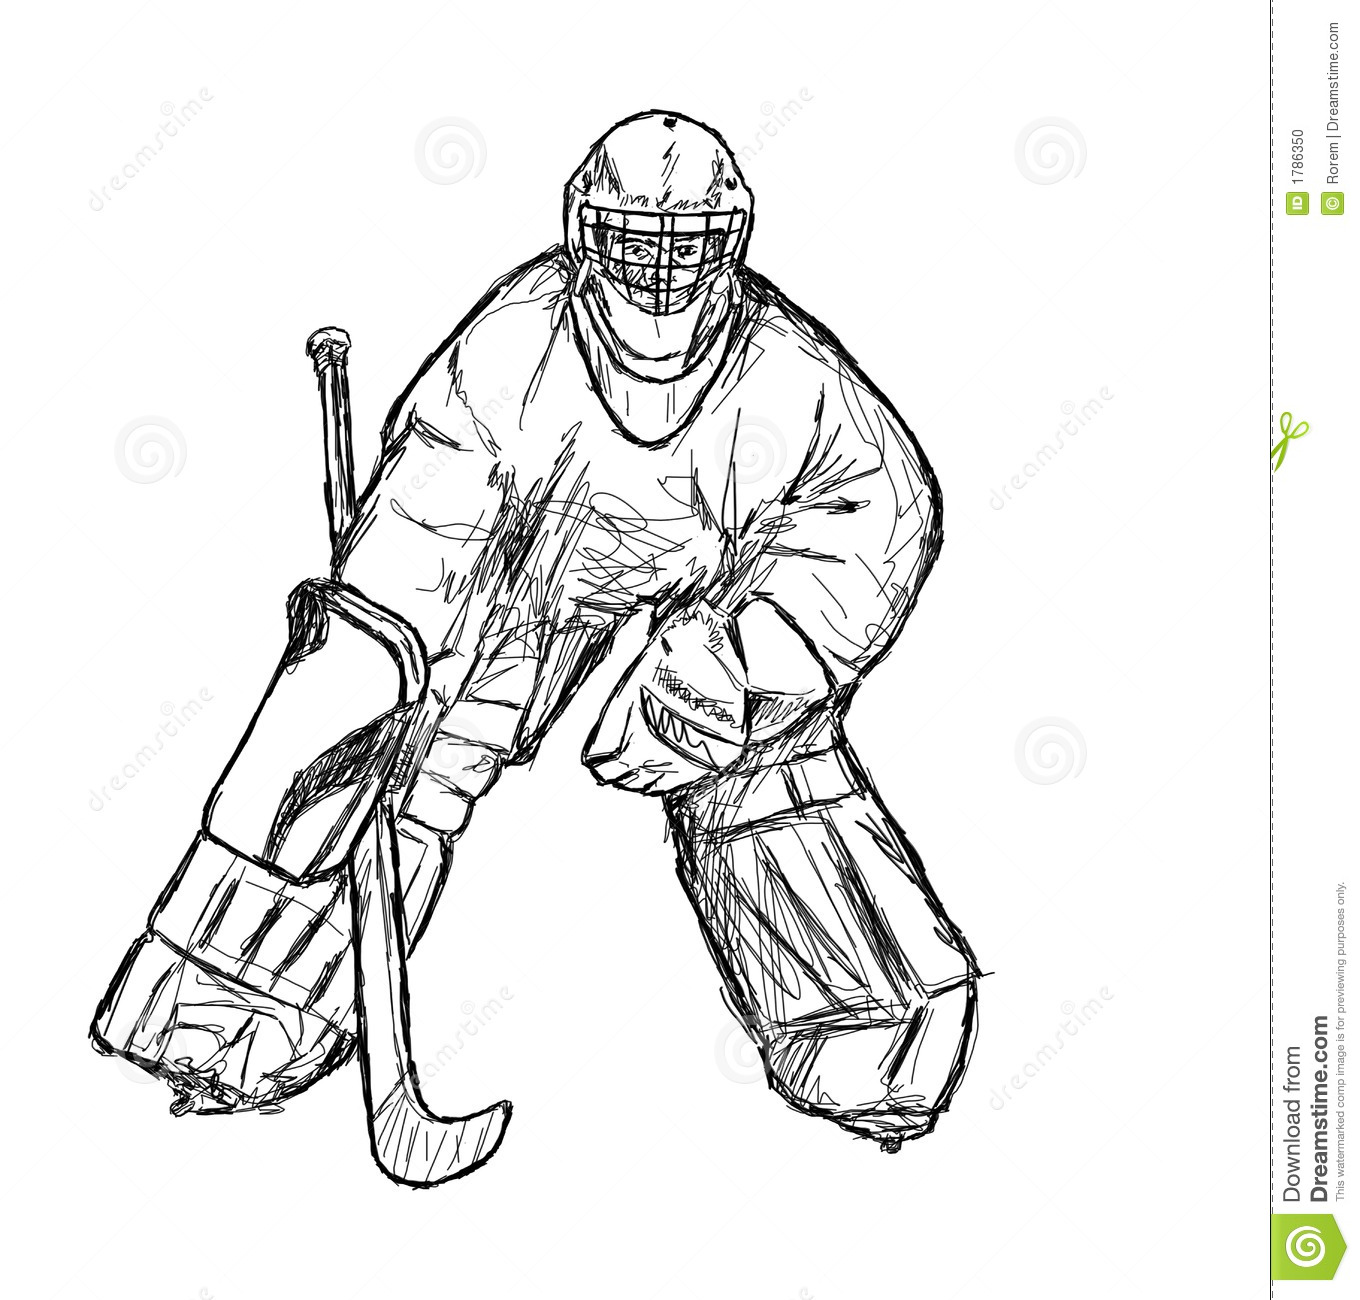 Royalty Free Stock Photo Roller Skating Sketch Image24689835 in addition Ups And Downs Of My Intern Year In Emergency Medicine together with Boy Taking A Bath Cartoon In Black And White 397927 further Royalty Free Stock Photography Sports Icons Set Illustration Eps Image32545787 furthermore Stock Photo Hockey Player Image1786350. on baseball vector graphics